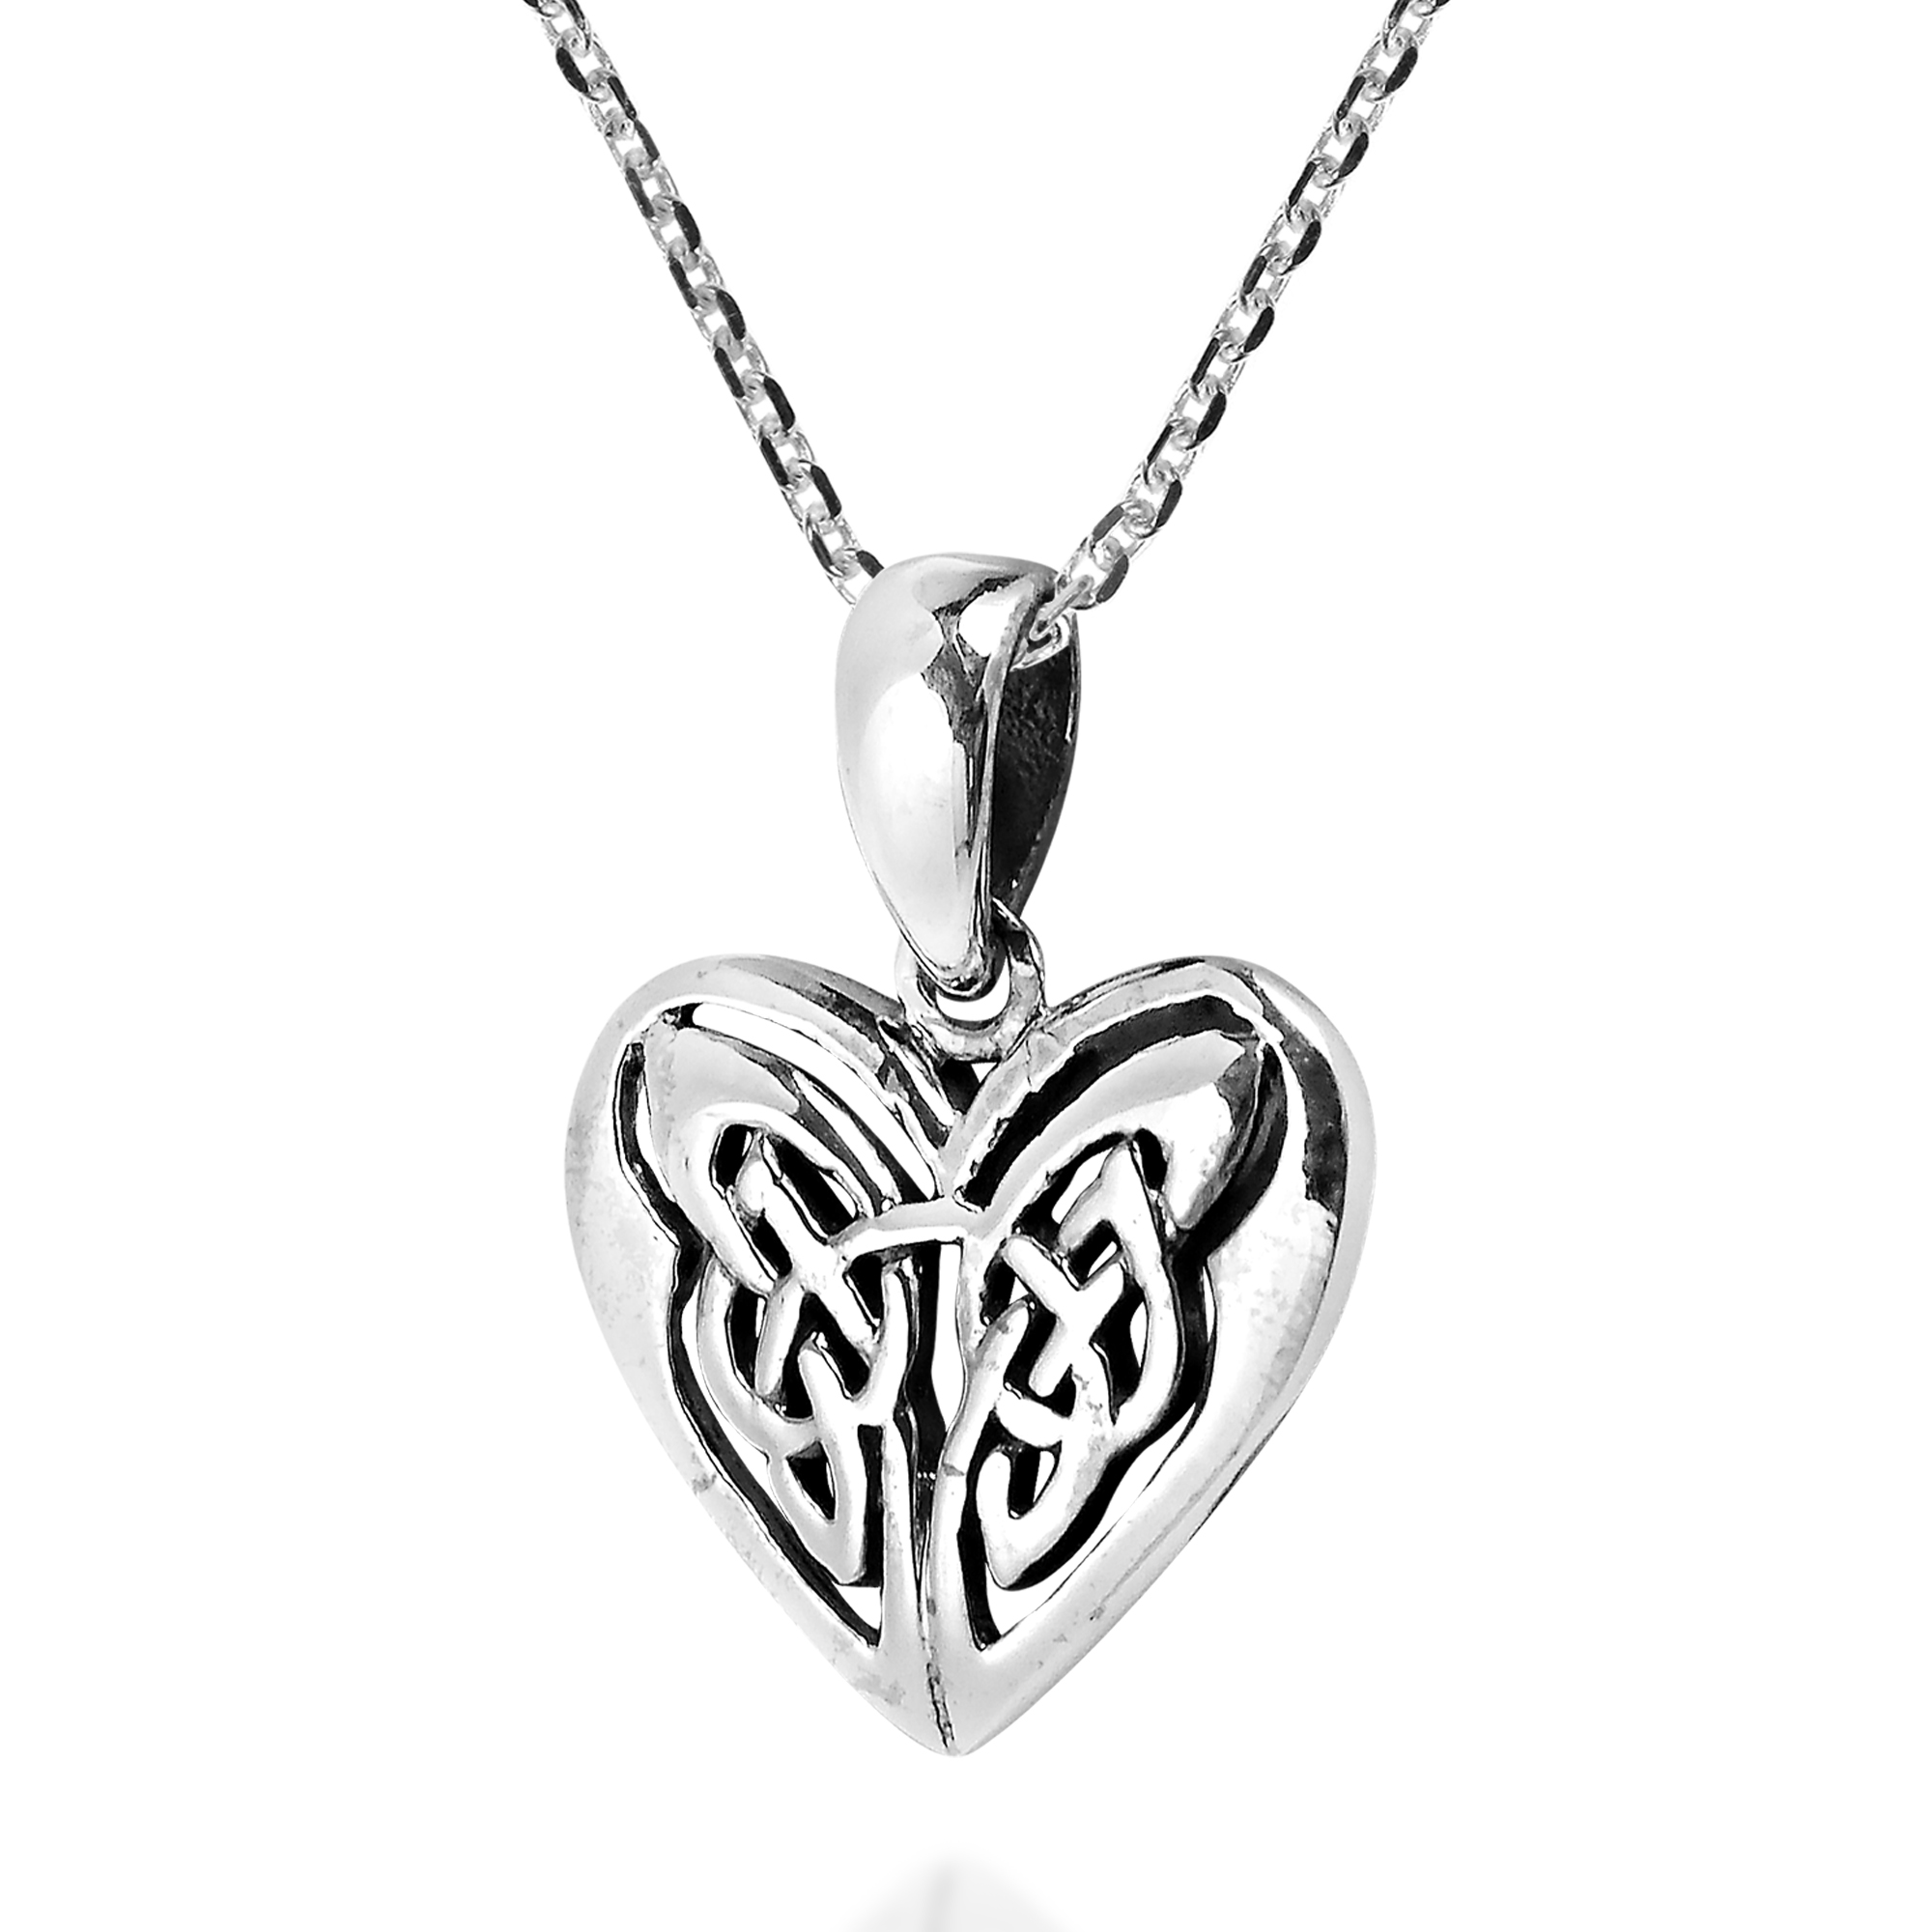 Stunning endless love celtic knot heart sterling silver necklace this unique piece features the endless knot symbol enclosed within a heart representing eternal love or unity biocorpaavc Images